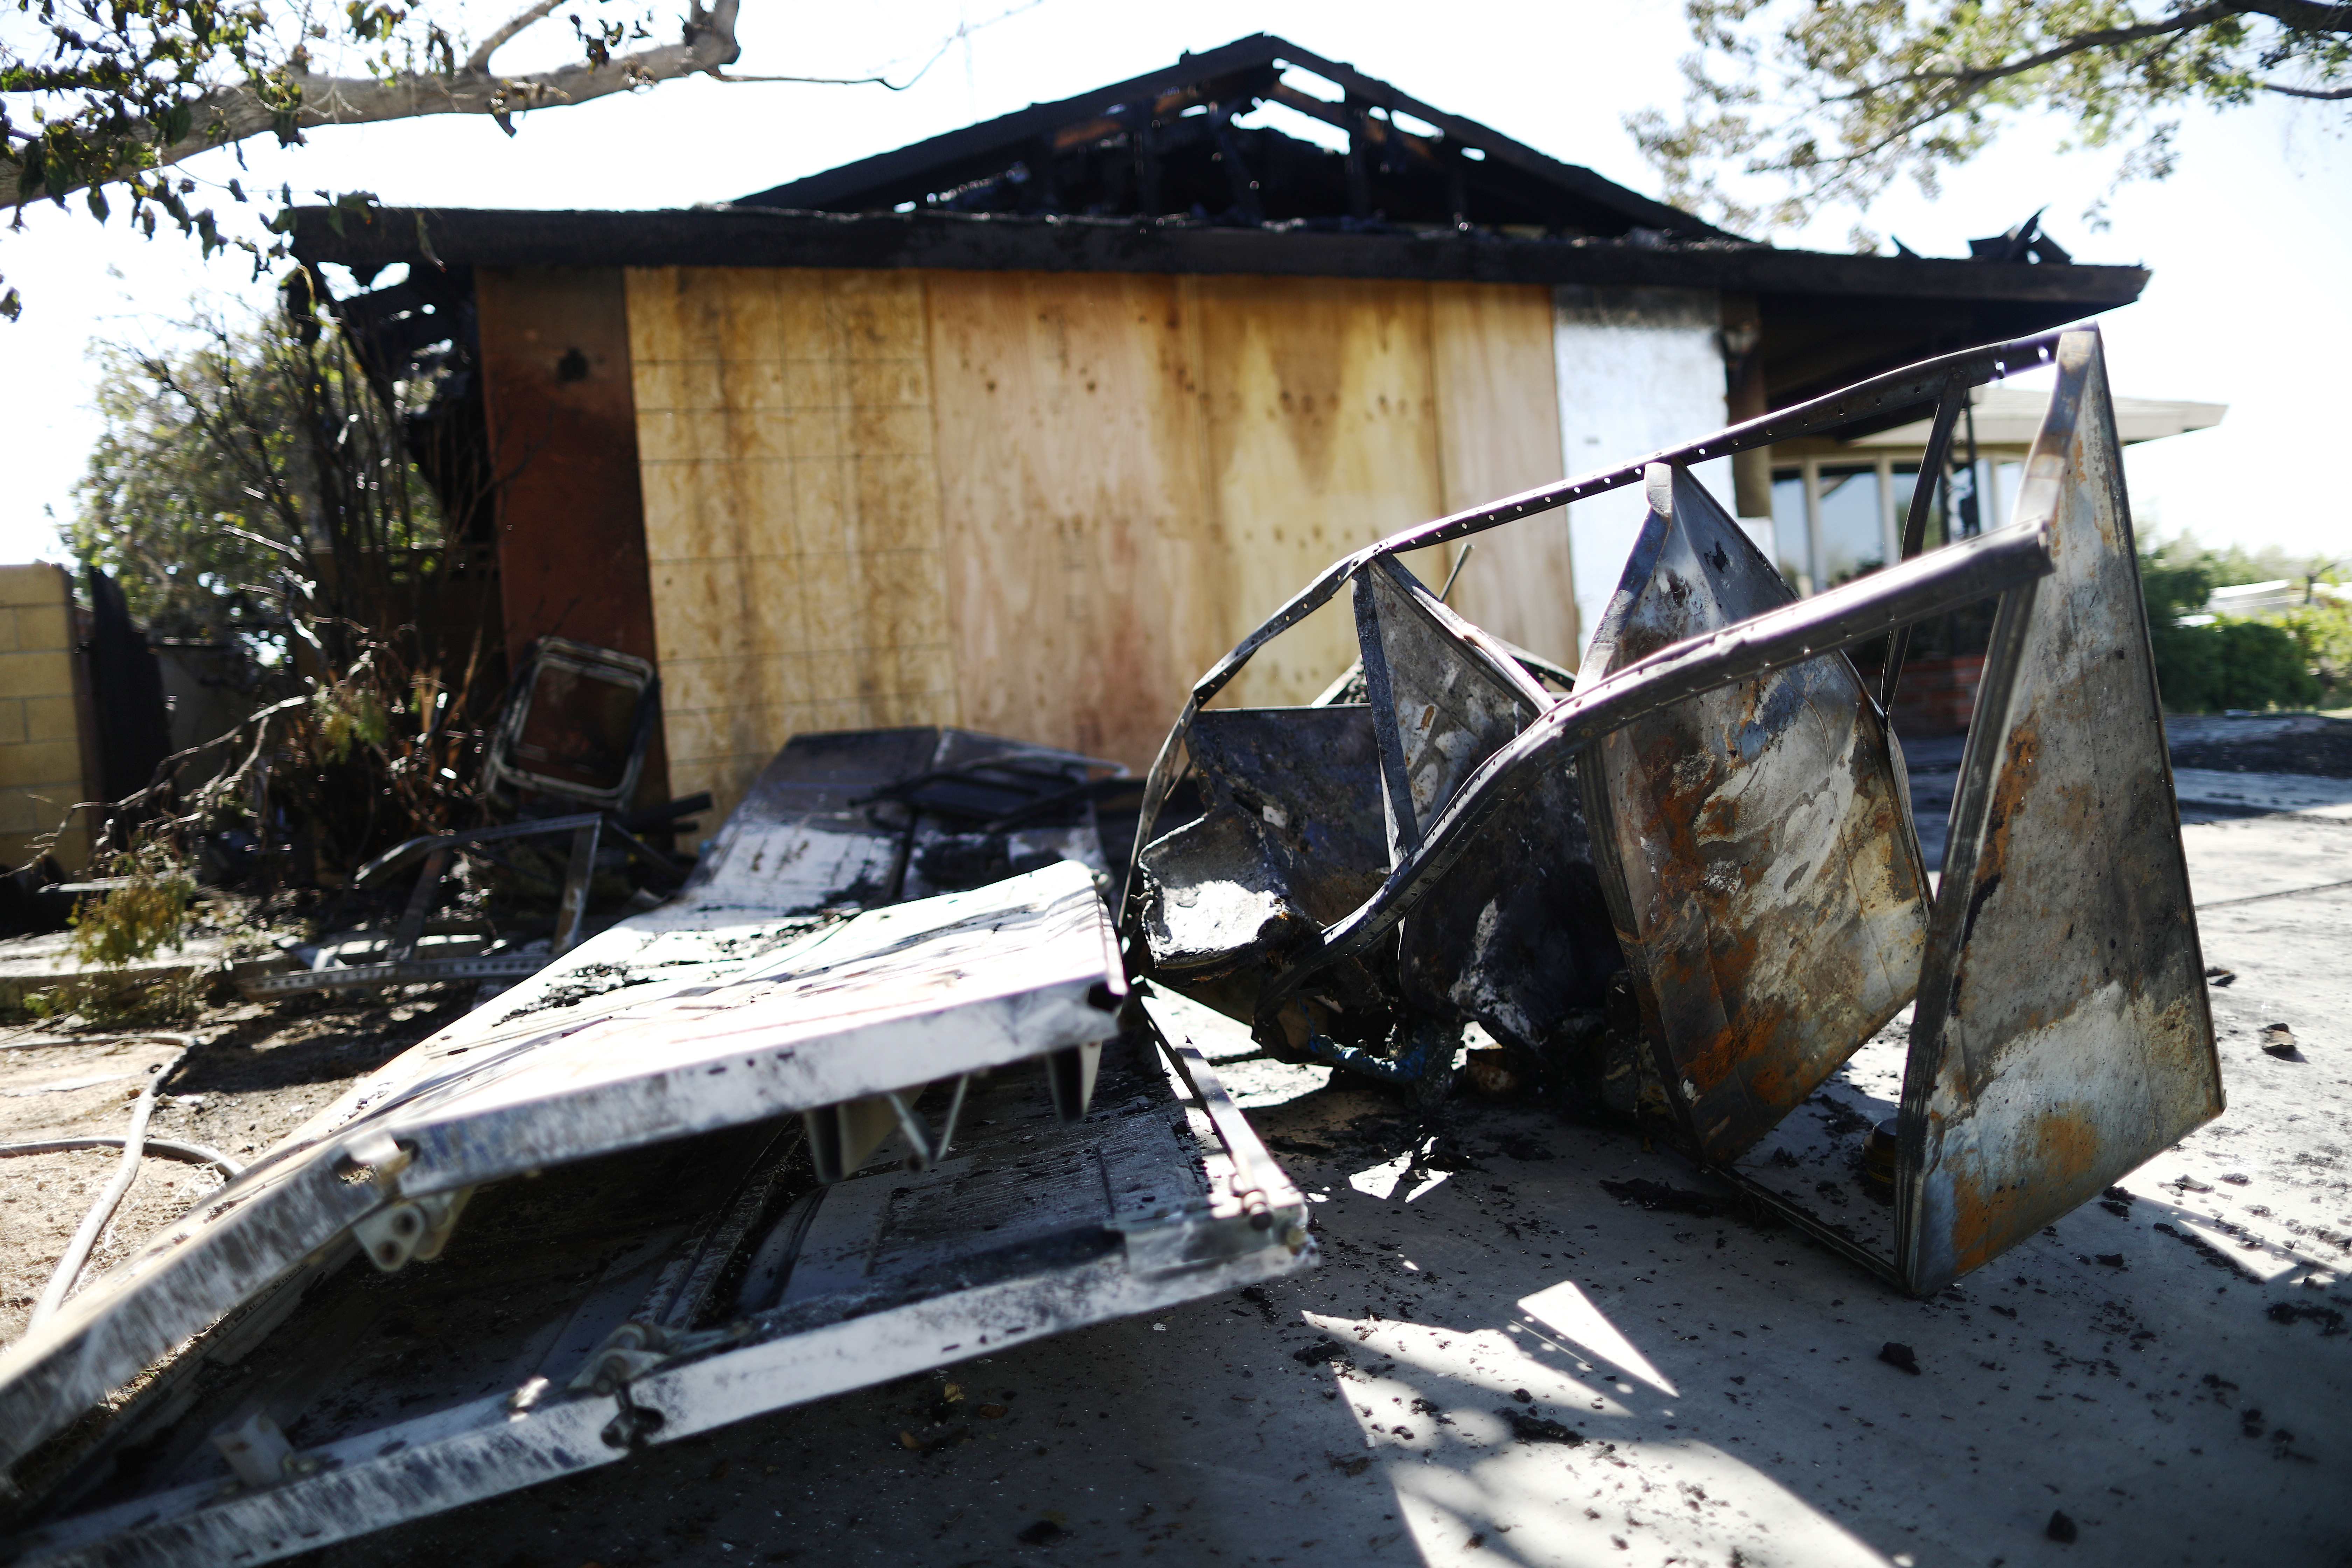 Charred items sit in front of a home which caught fire following a 6.4 magnitude earthquake on July 4, 2019 in Ridgecrest, California. The earthquake was the largest to strike Southern California in 20 years with the epicenter located in a remote area of the Mojave Desert. The temblor was felt by residents across Southern California. (Photo by Mario Tama/Getty Images)